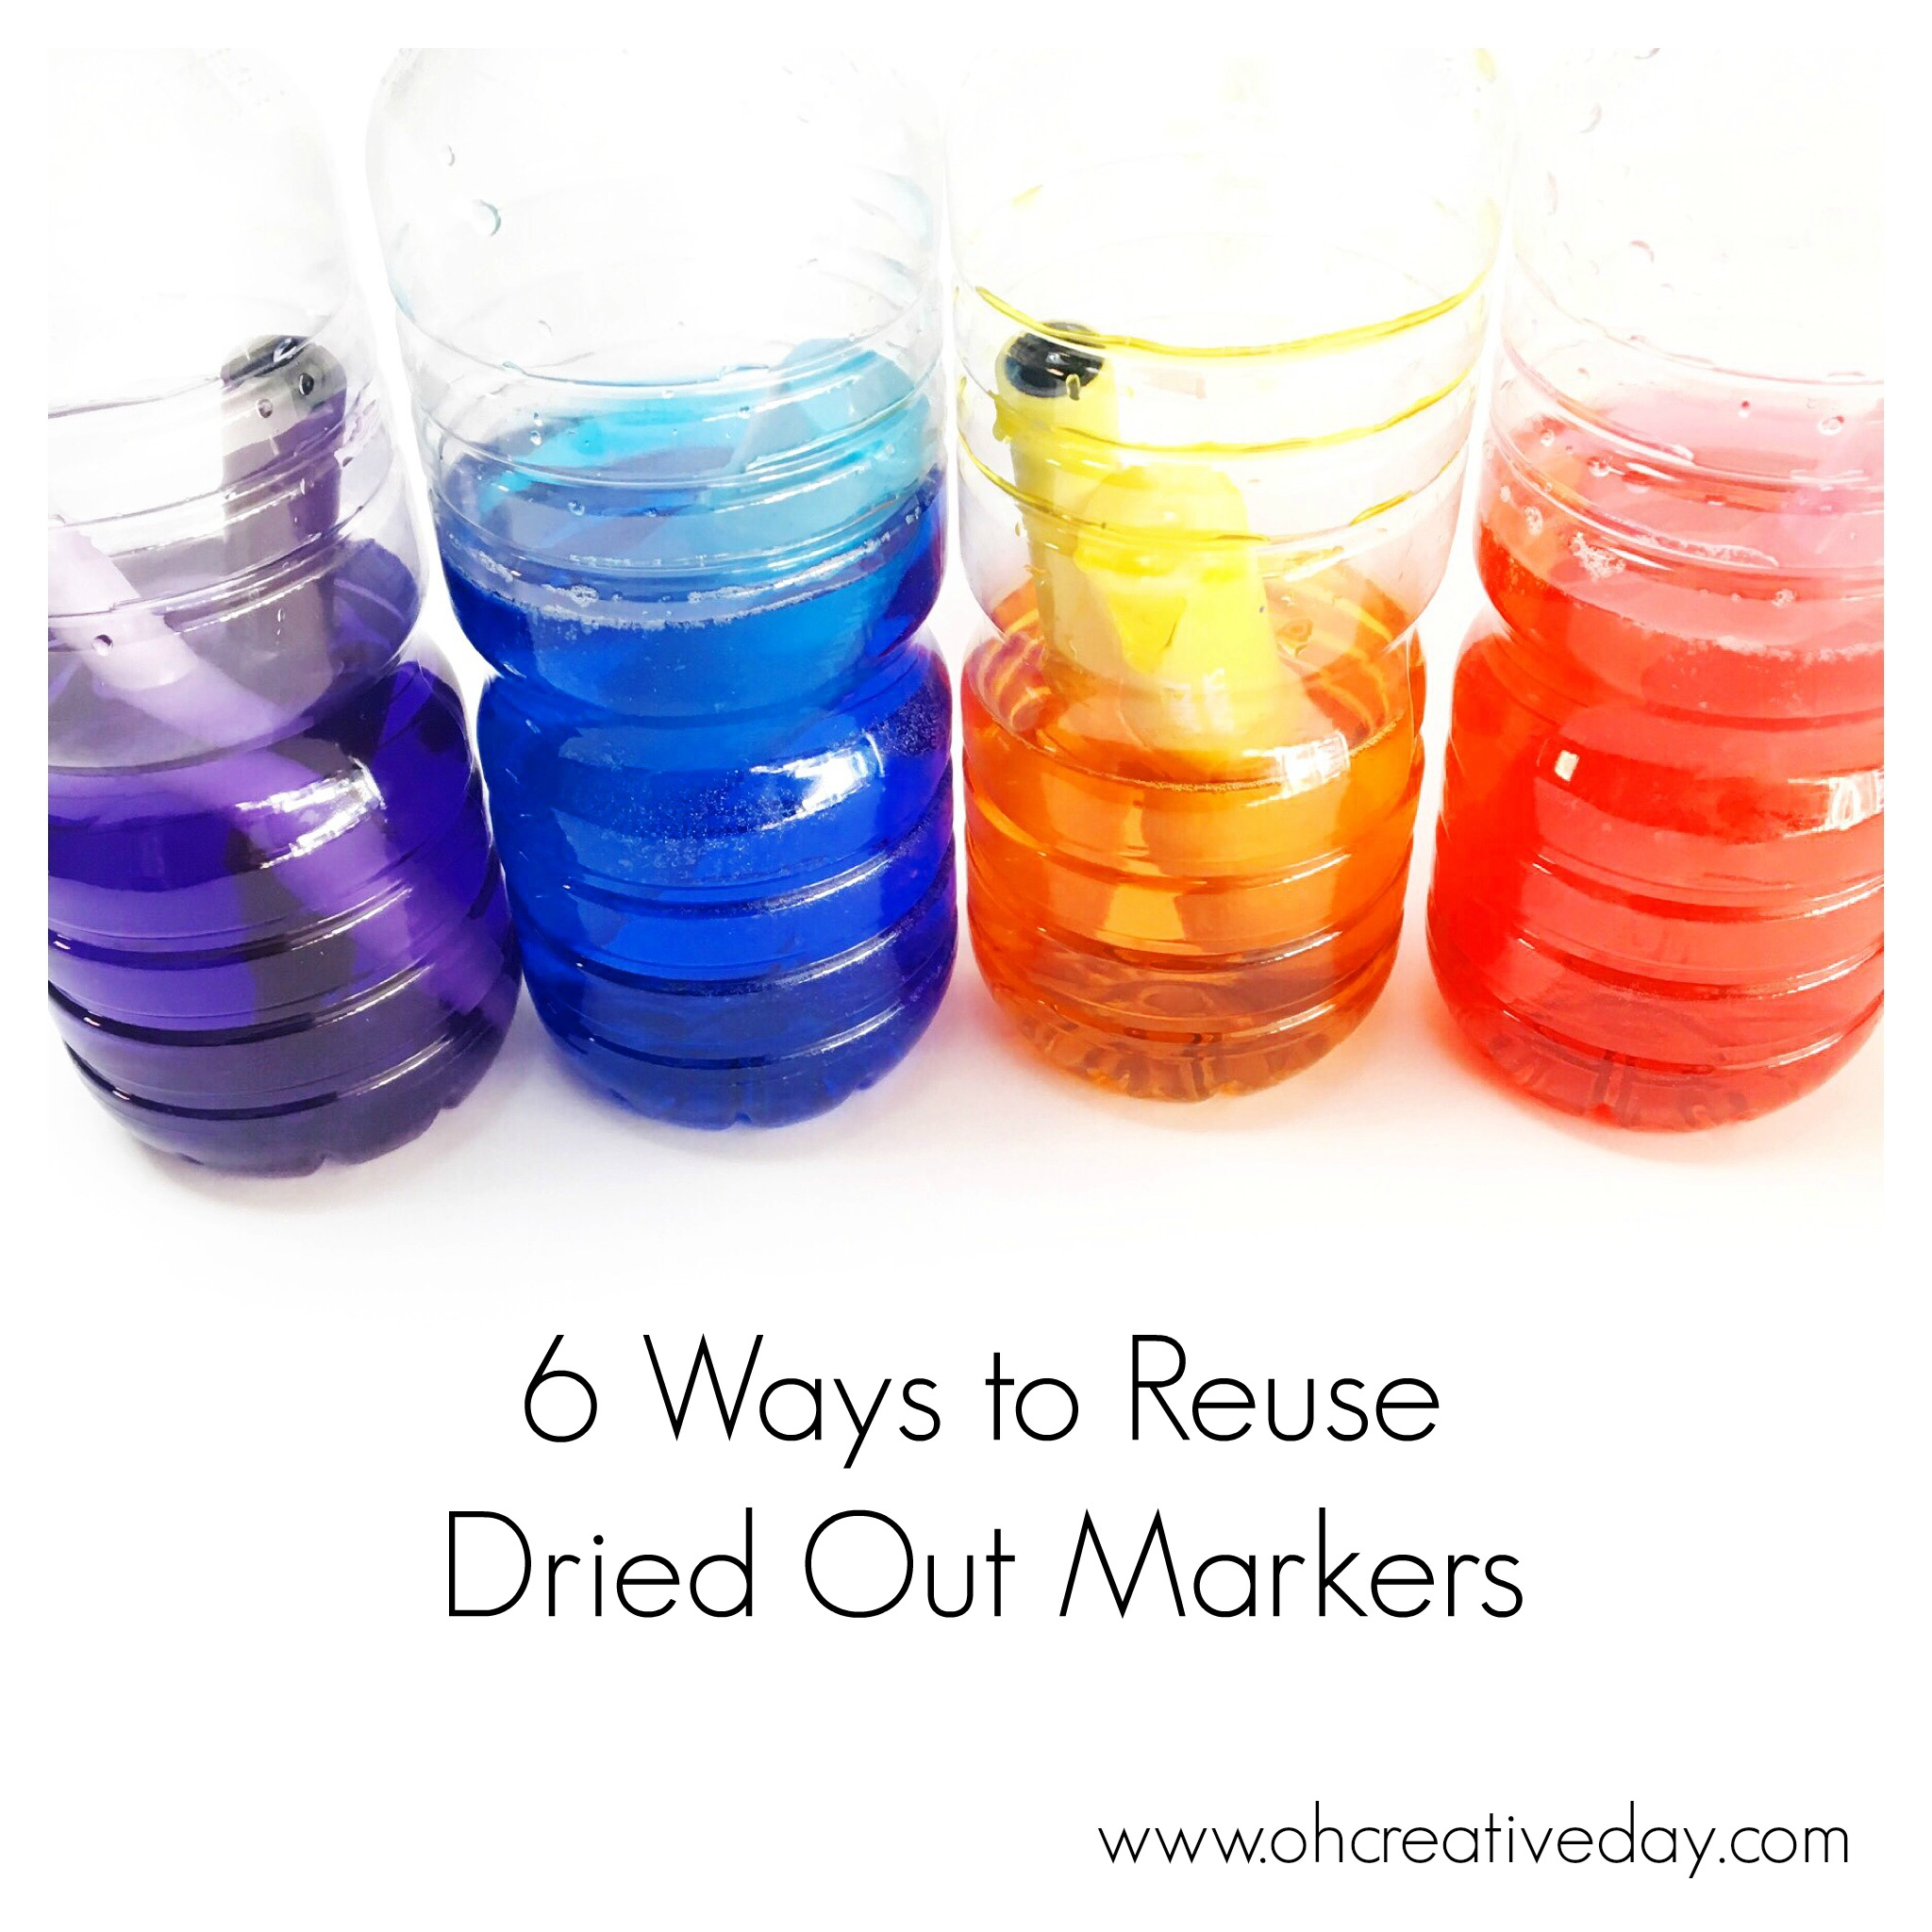 Reuse Dried Out Markers